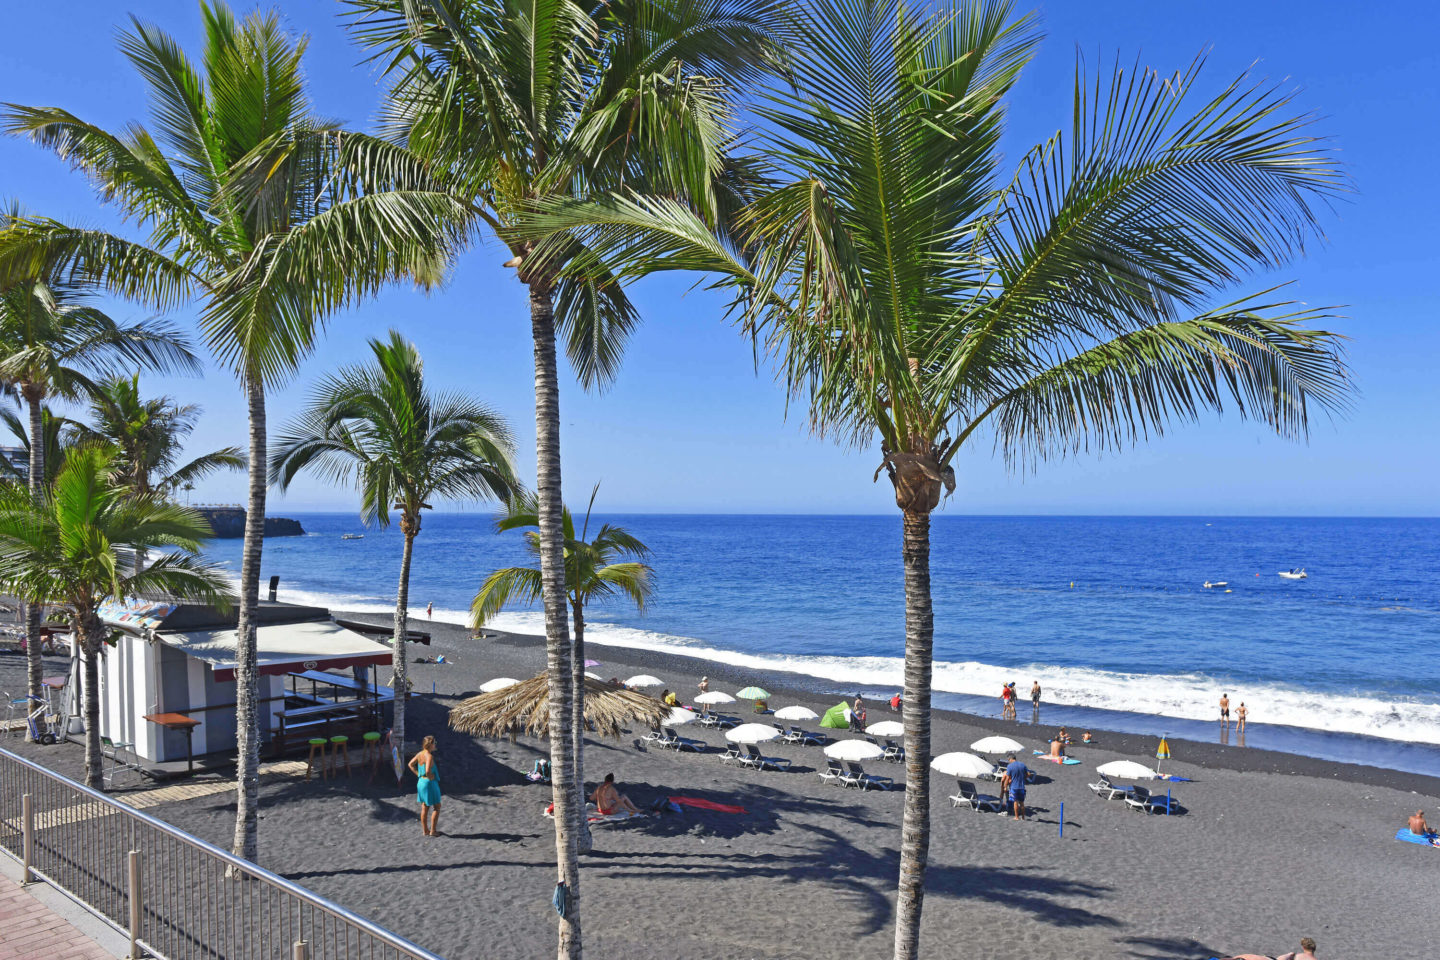 An unforgettable day in the seaside town of Puerto Naos, La Palma